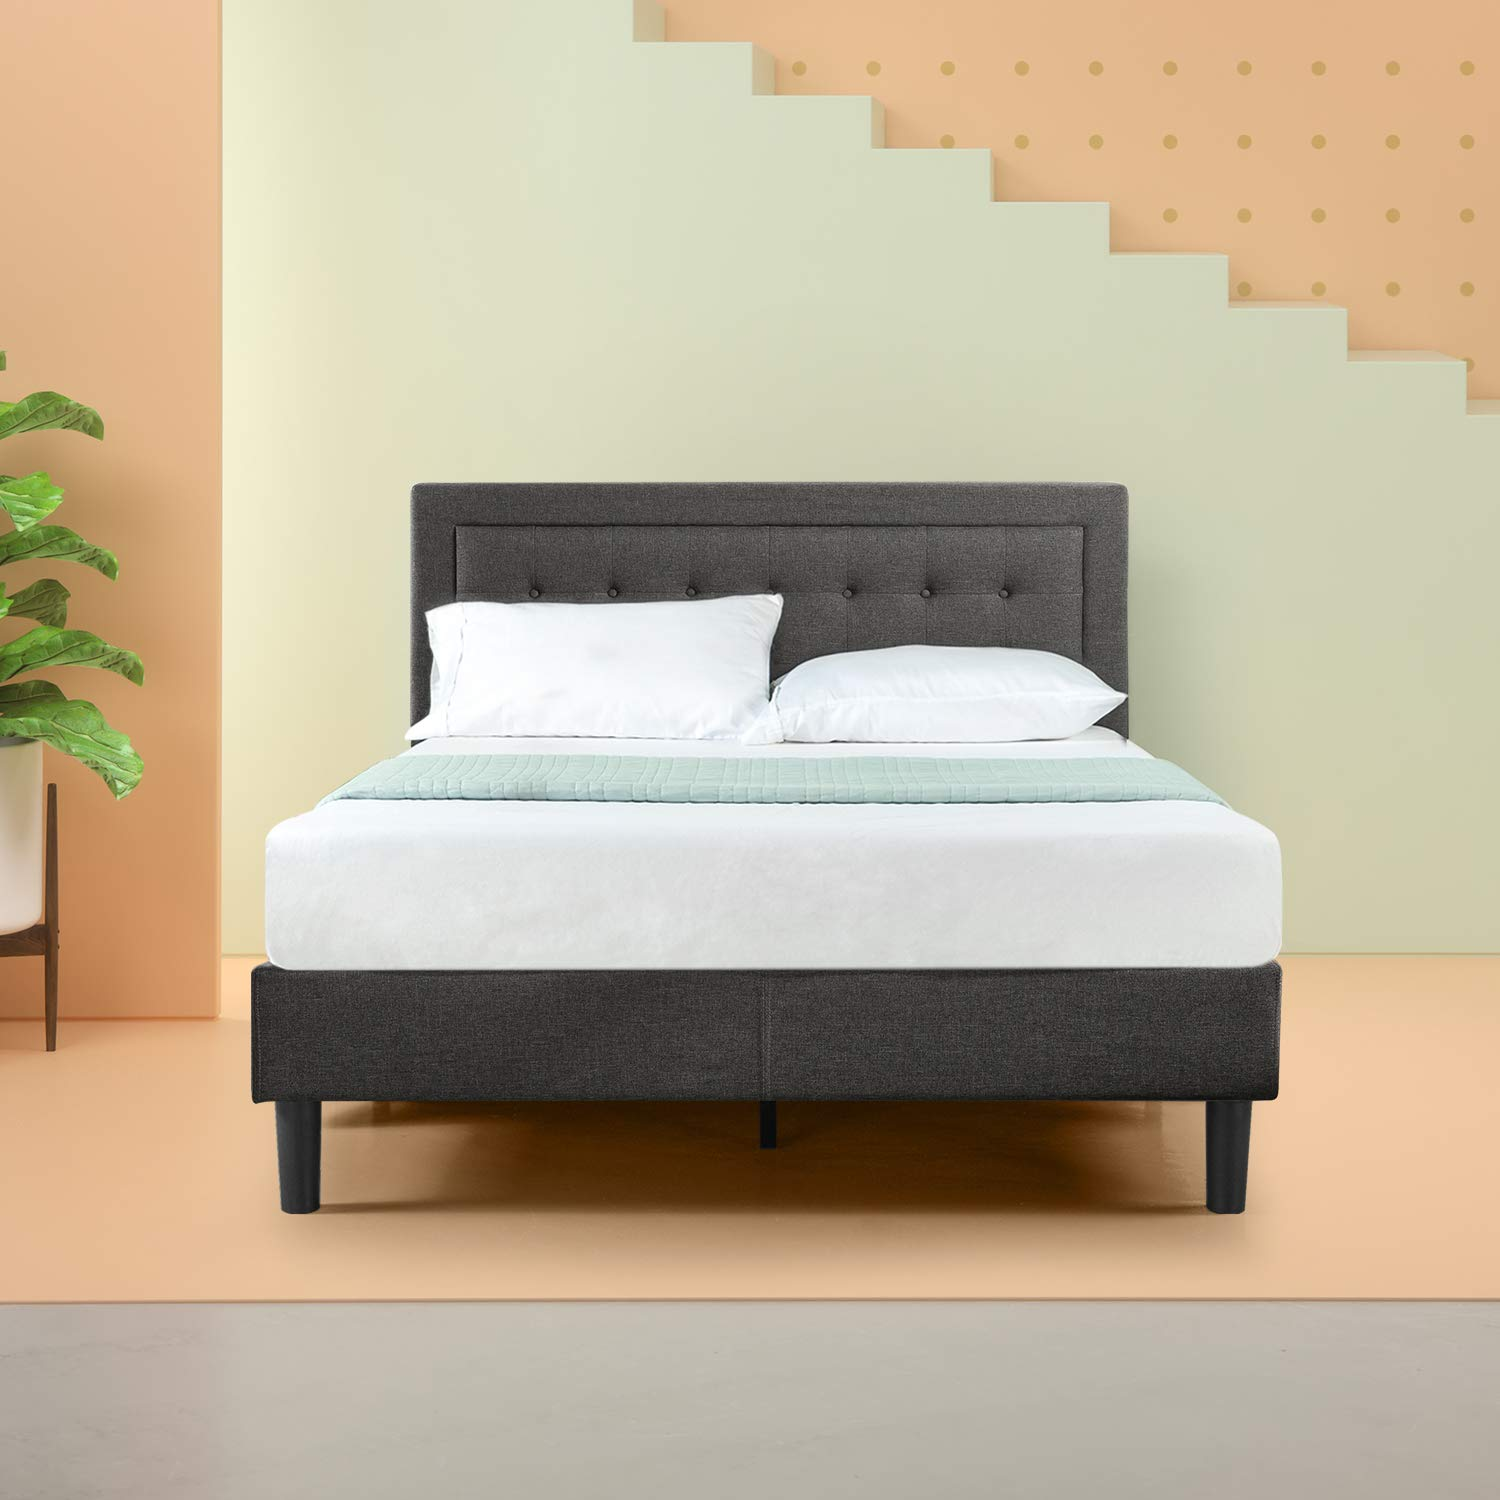 Zinus Dachelle Upholstered Button Tufted Premium Platform Bed / Mattress Foundation / Easy Assembly / Strong Wood Slat Support / Dark Grey, Queen by Zinus